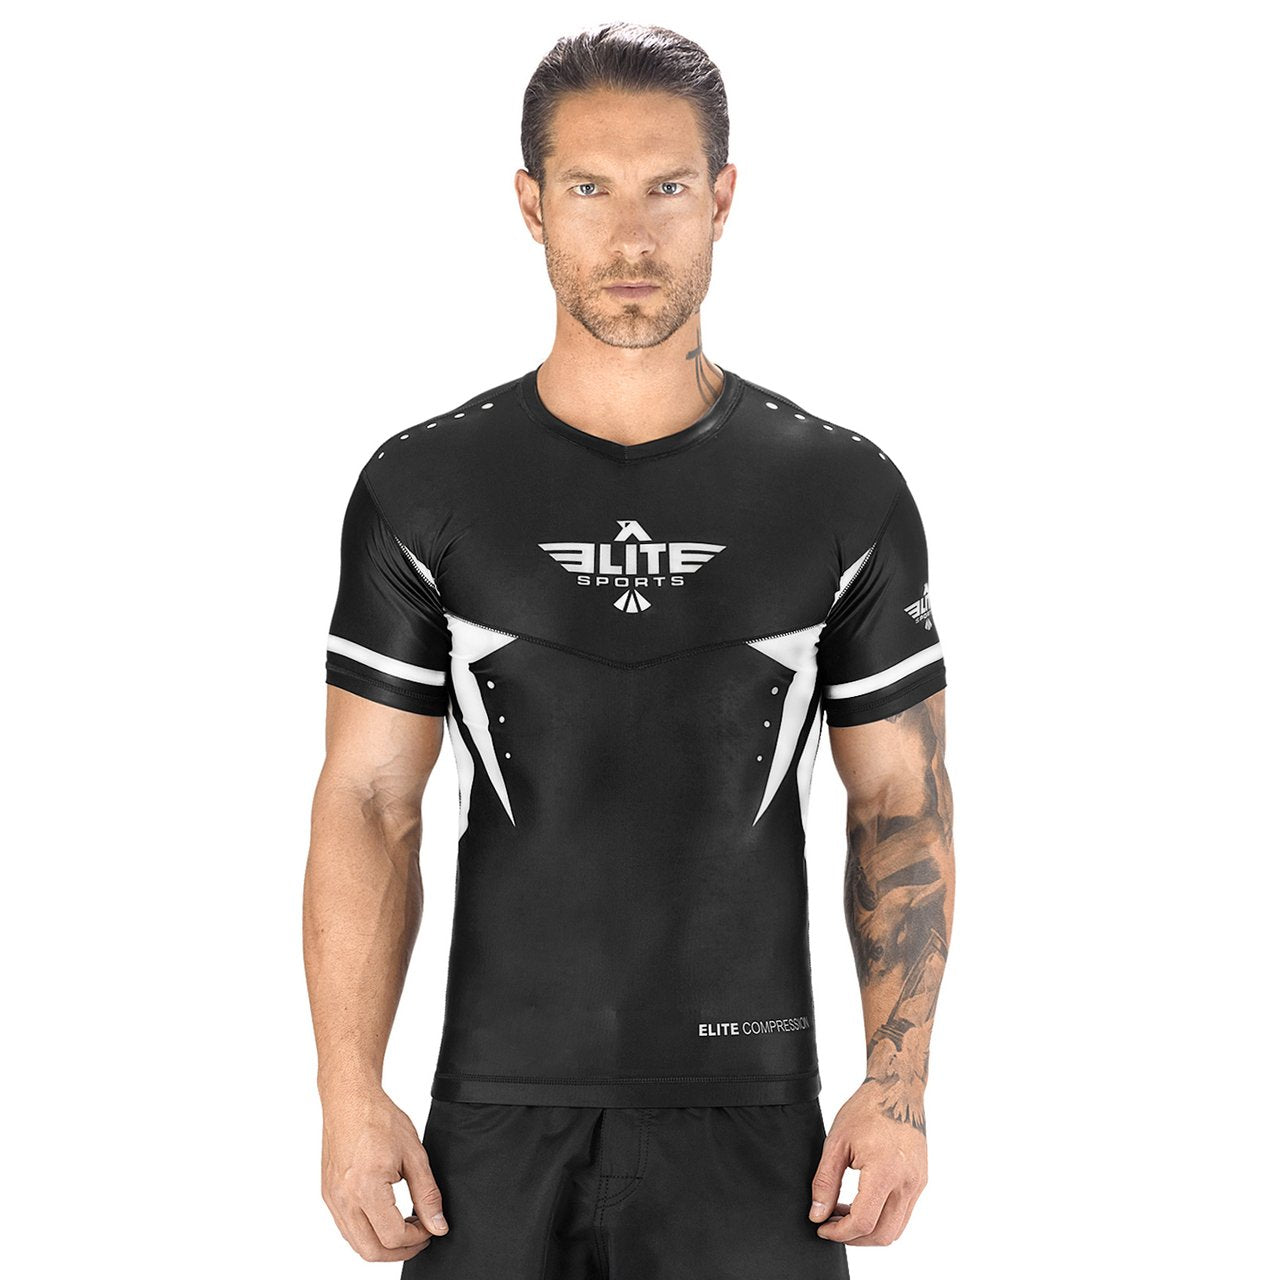 Load image into Gallery viewer, Elite Sports Star Series Sublimation Black/White Short Sleeve MMA Rash Guard